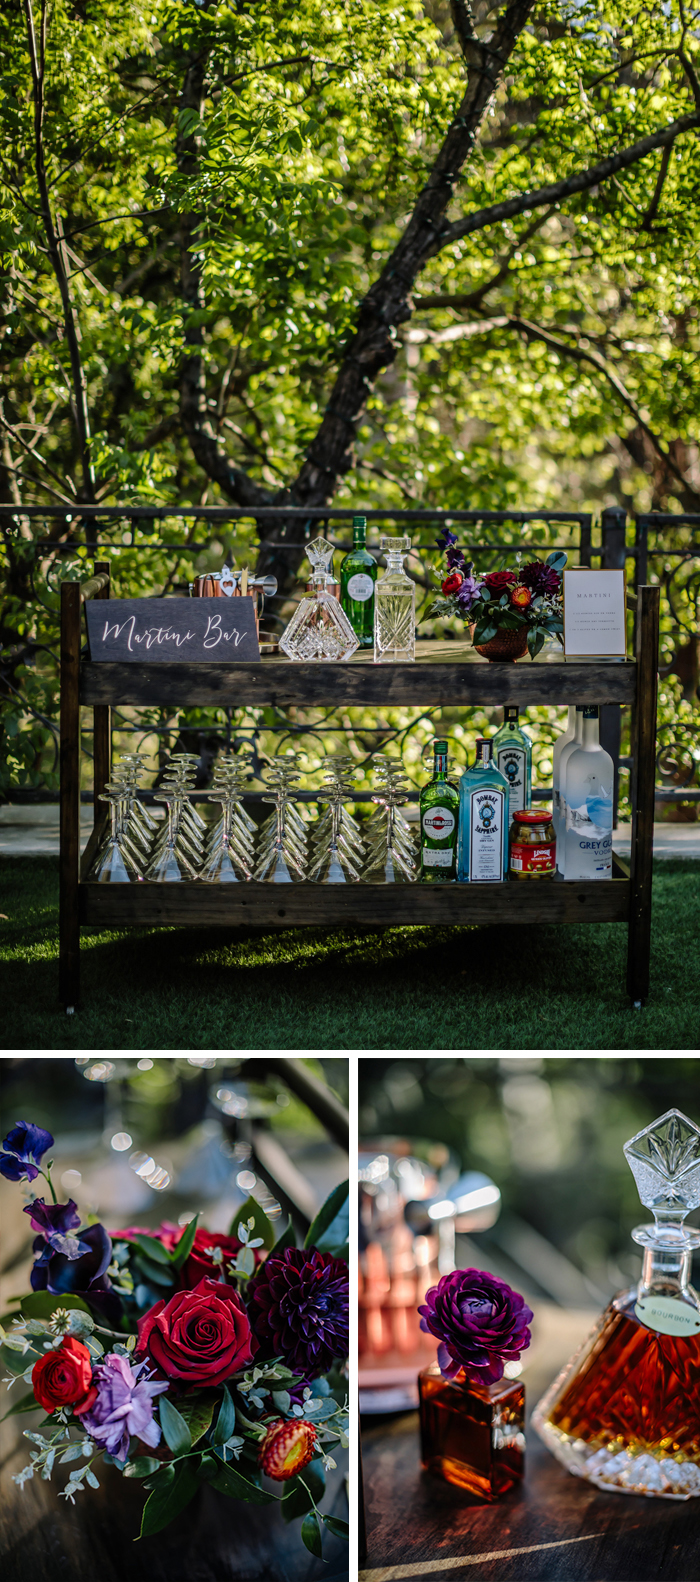 Wedding reception bar carts with jewel toned flower touches and arrangements by Winston and Main.